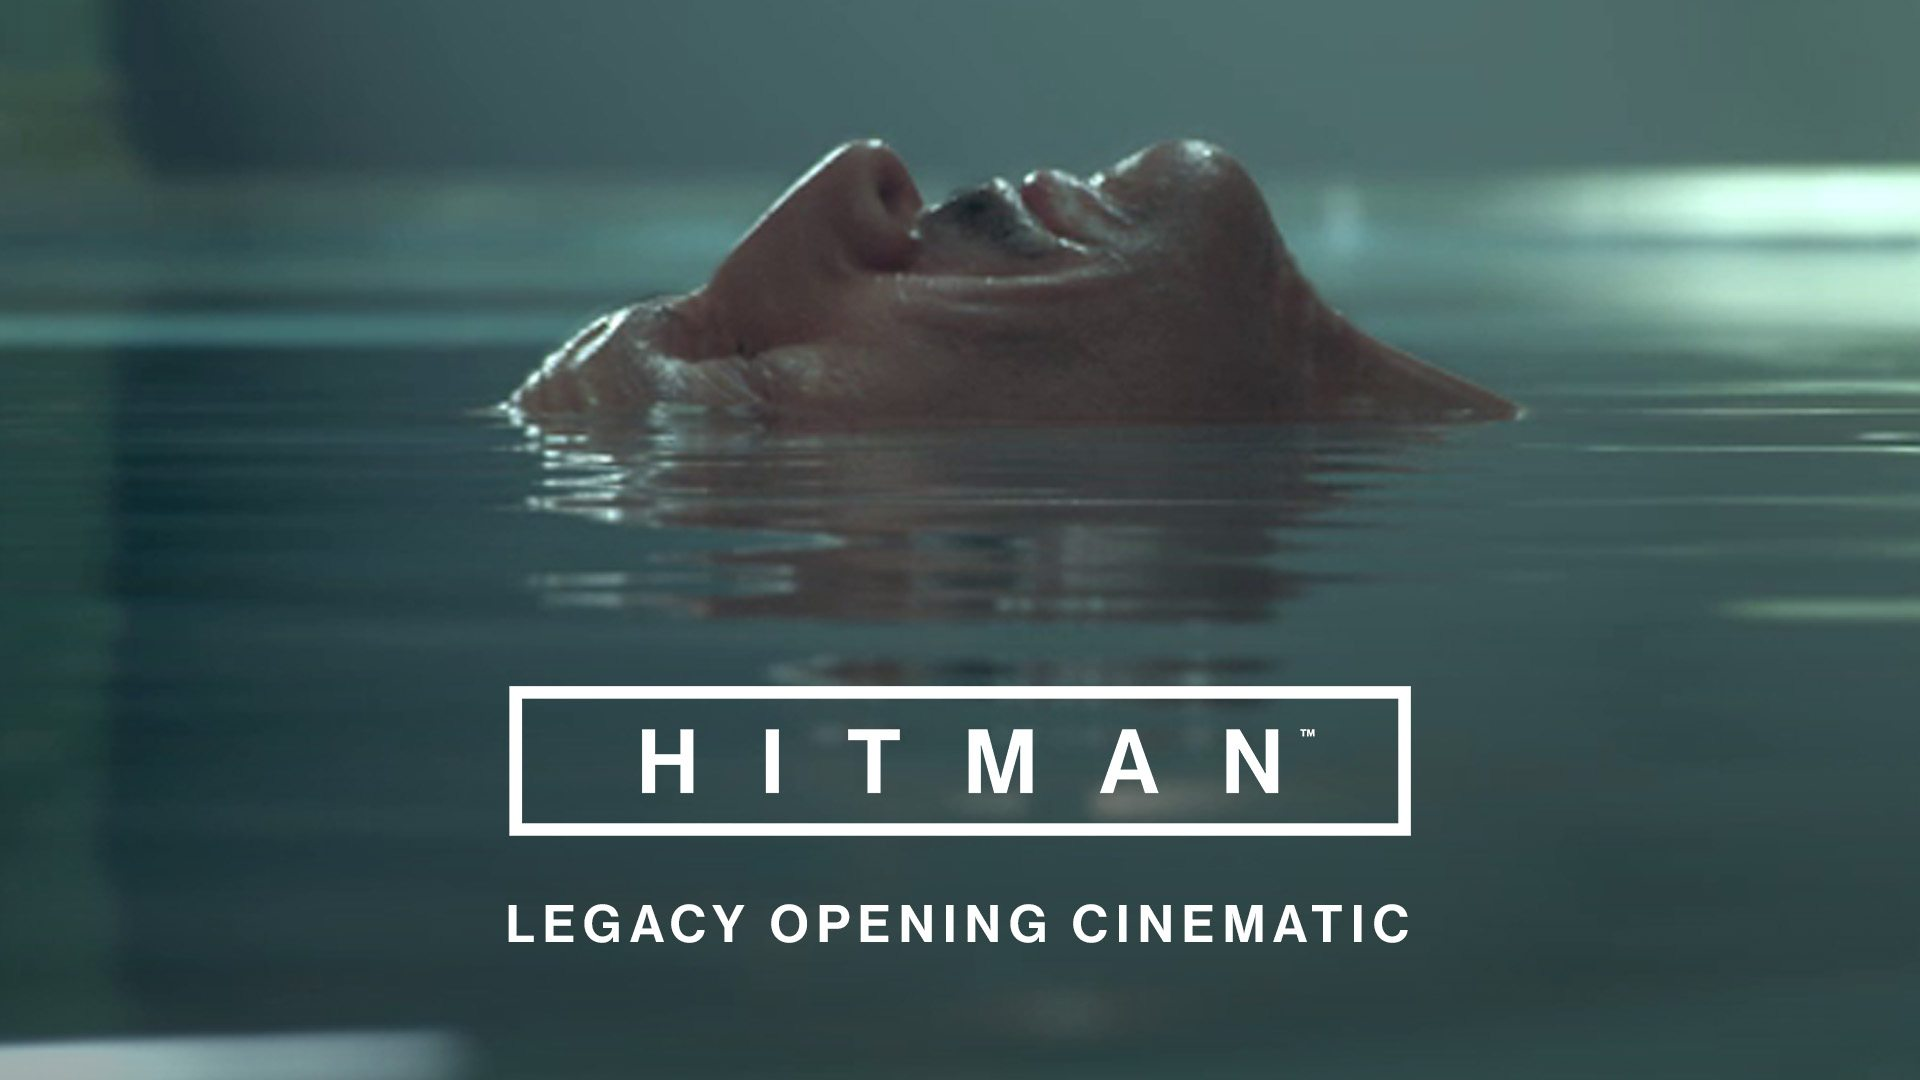 hitman_legacy_opening_cinematic_thumbnail